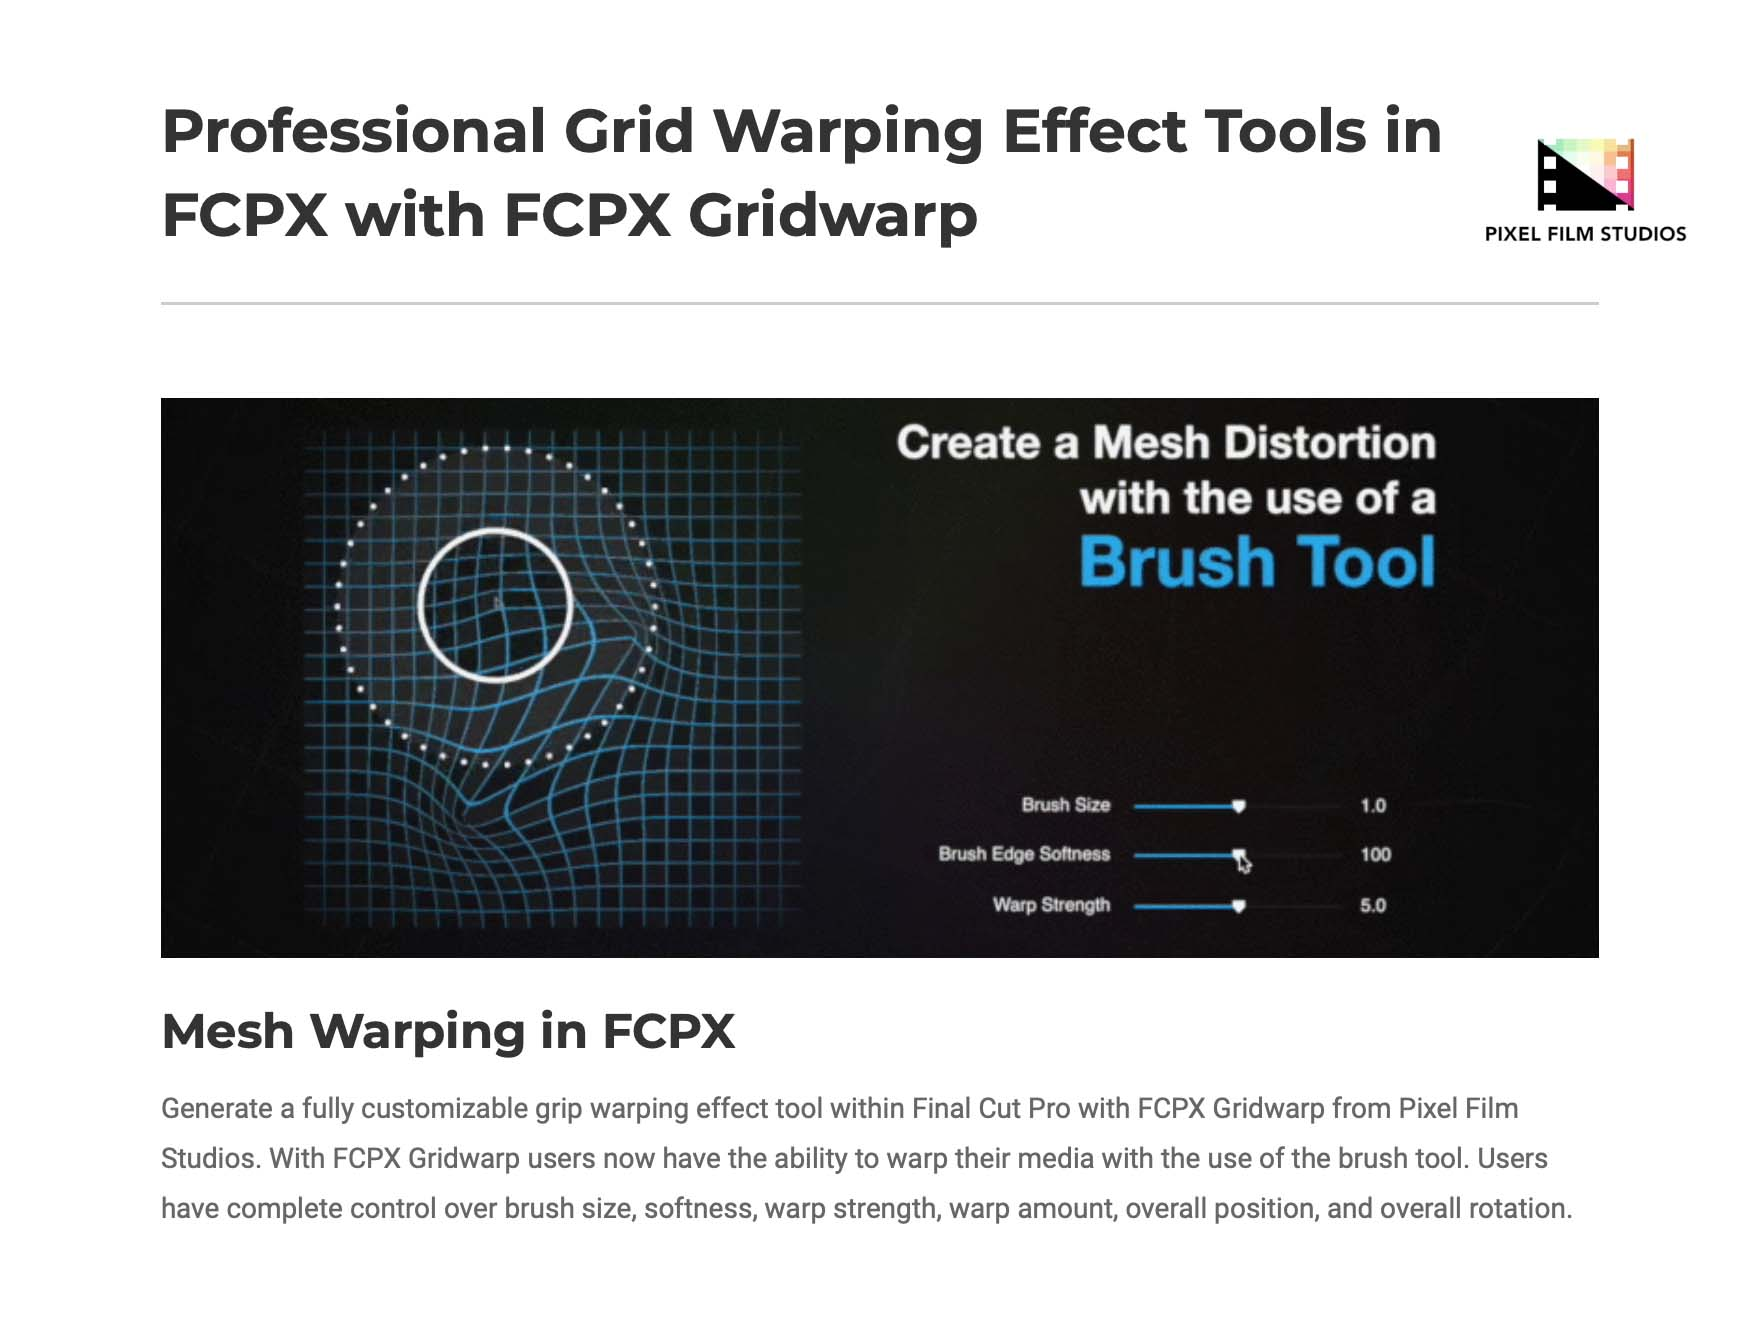 Developers at Pixel Film Studios Launch FCPX Gridwarp for Final Cut